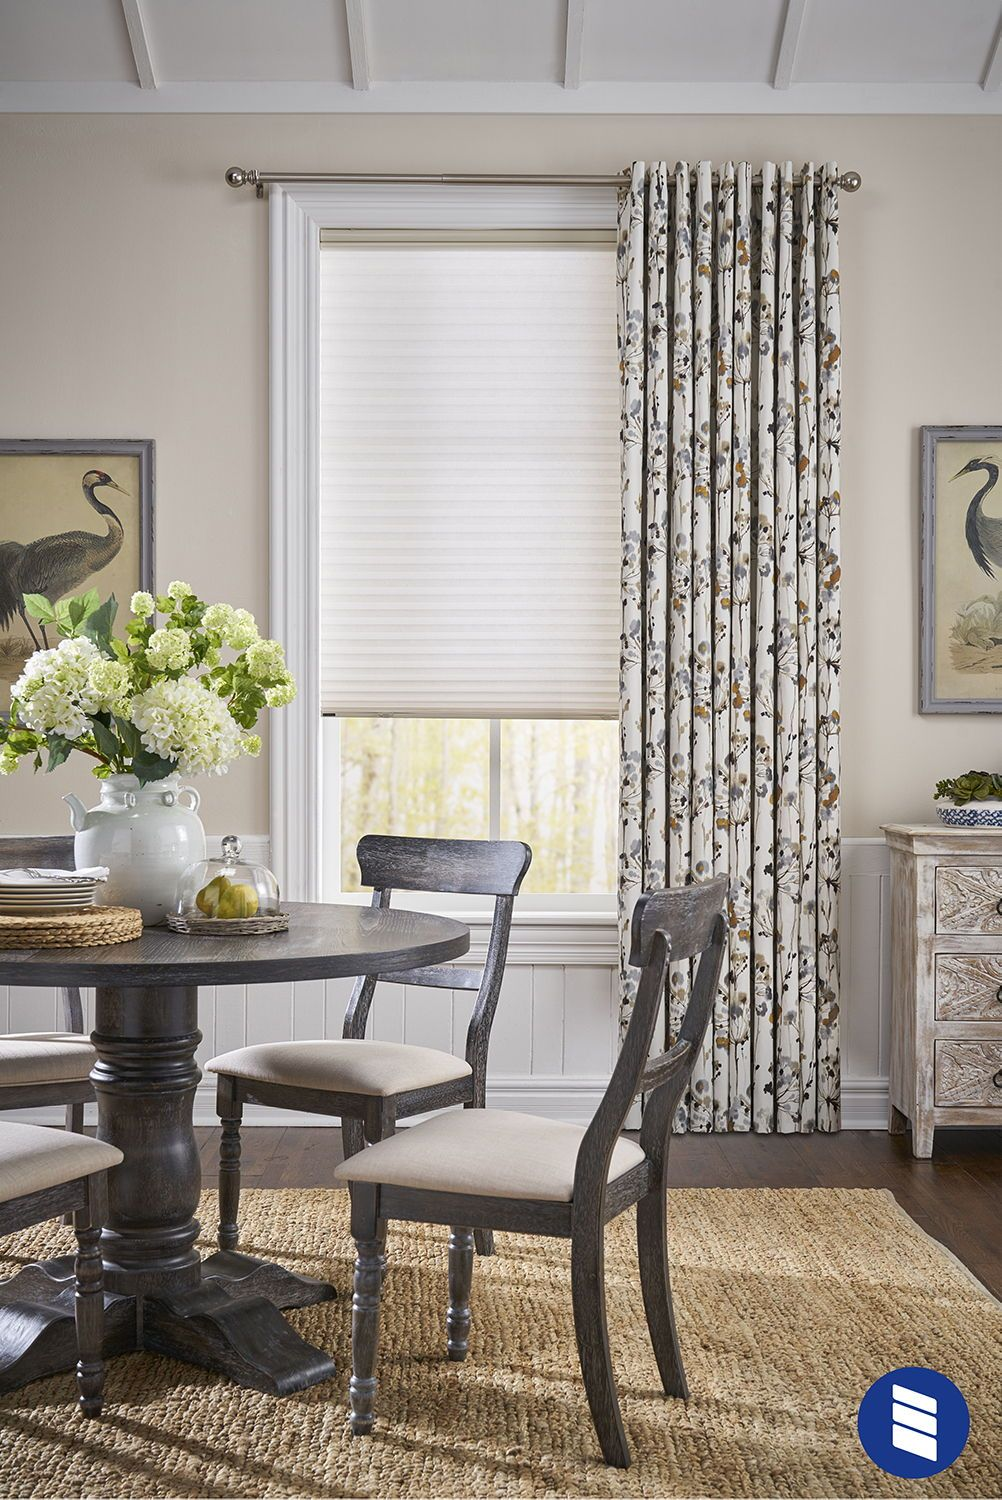 Light Filtering Cellular Shades Blinds Com In 2021 Dining Room Curtains Window Treatments Living Room Dining Room Window Treatments